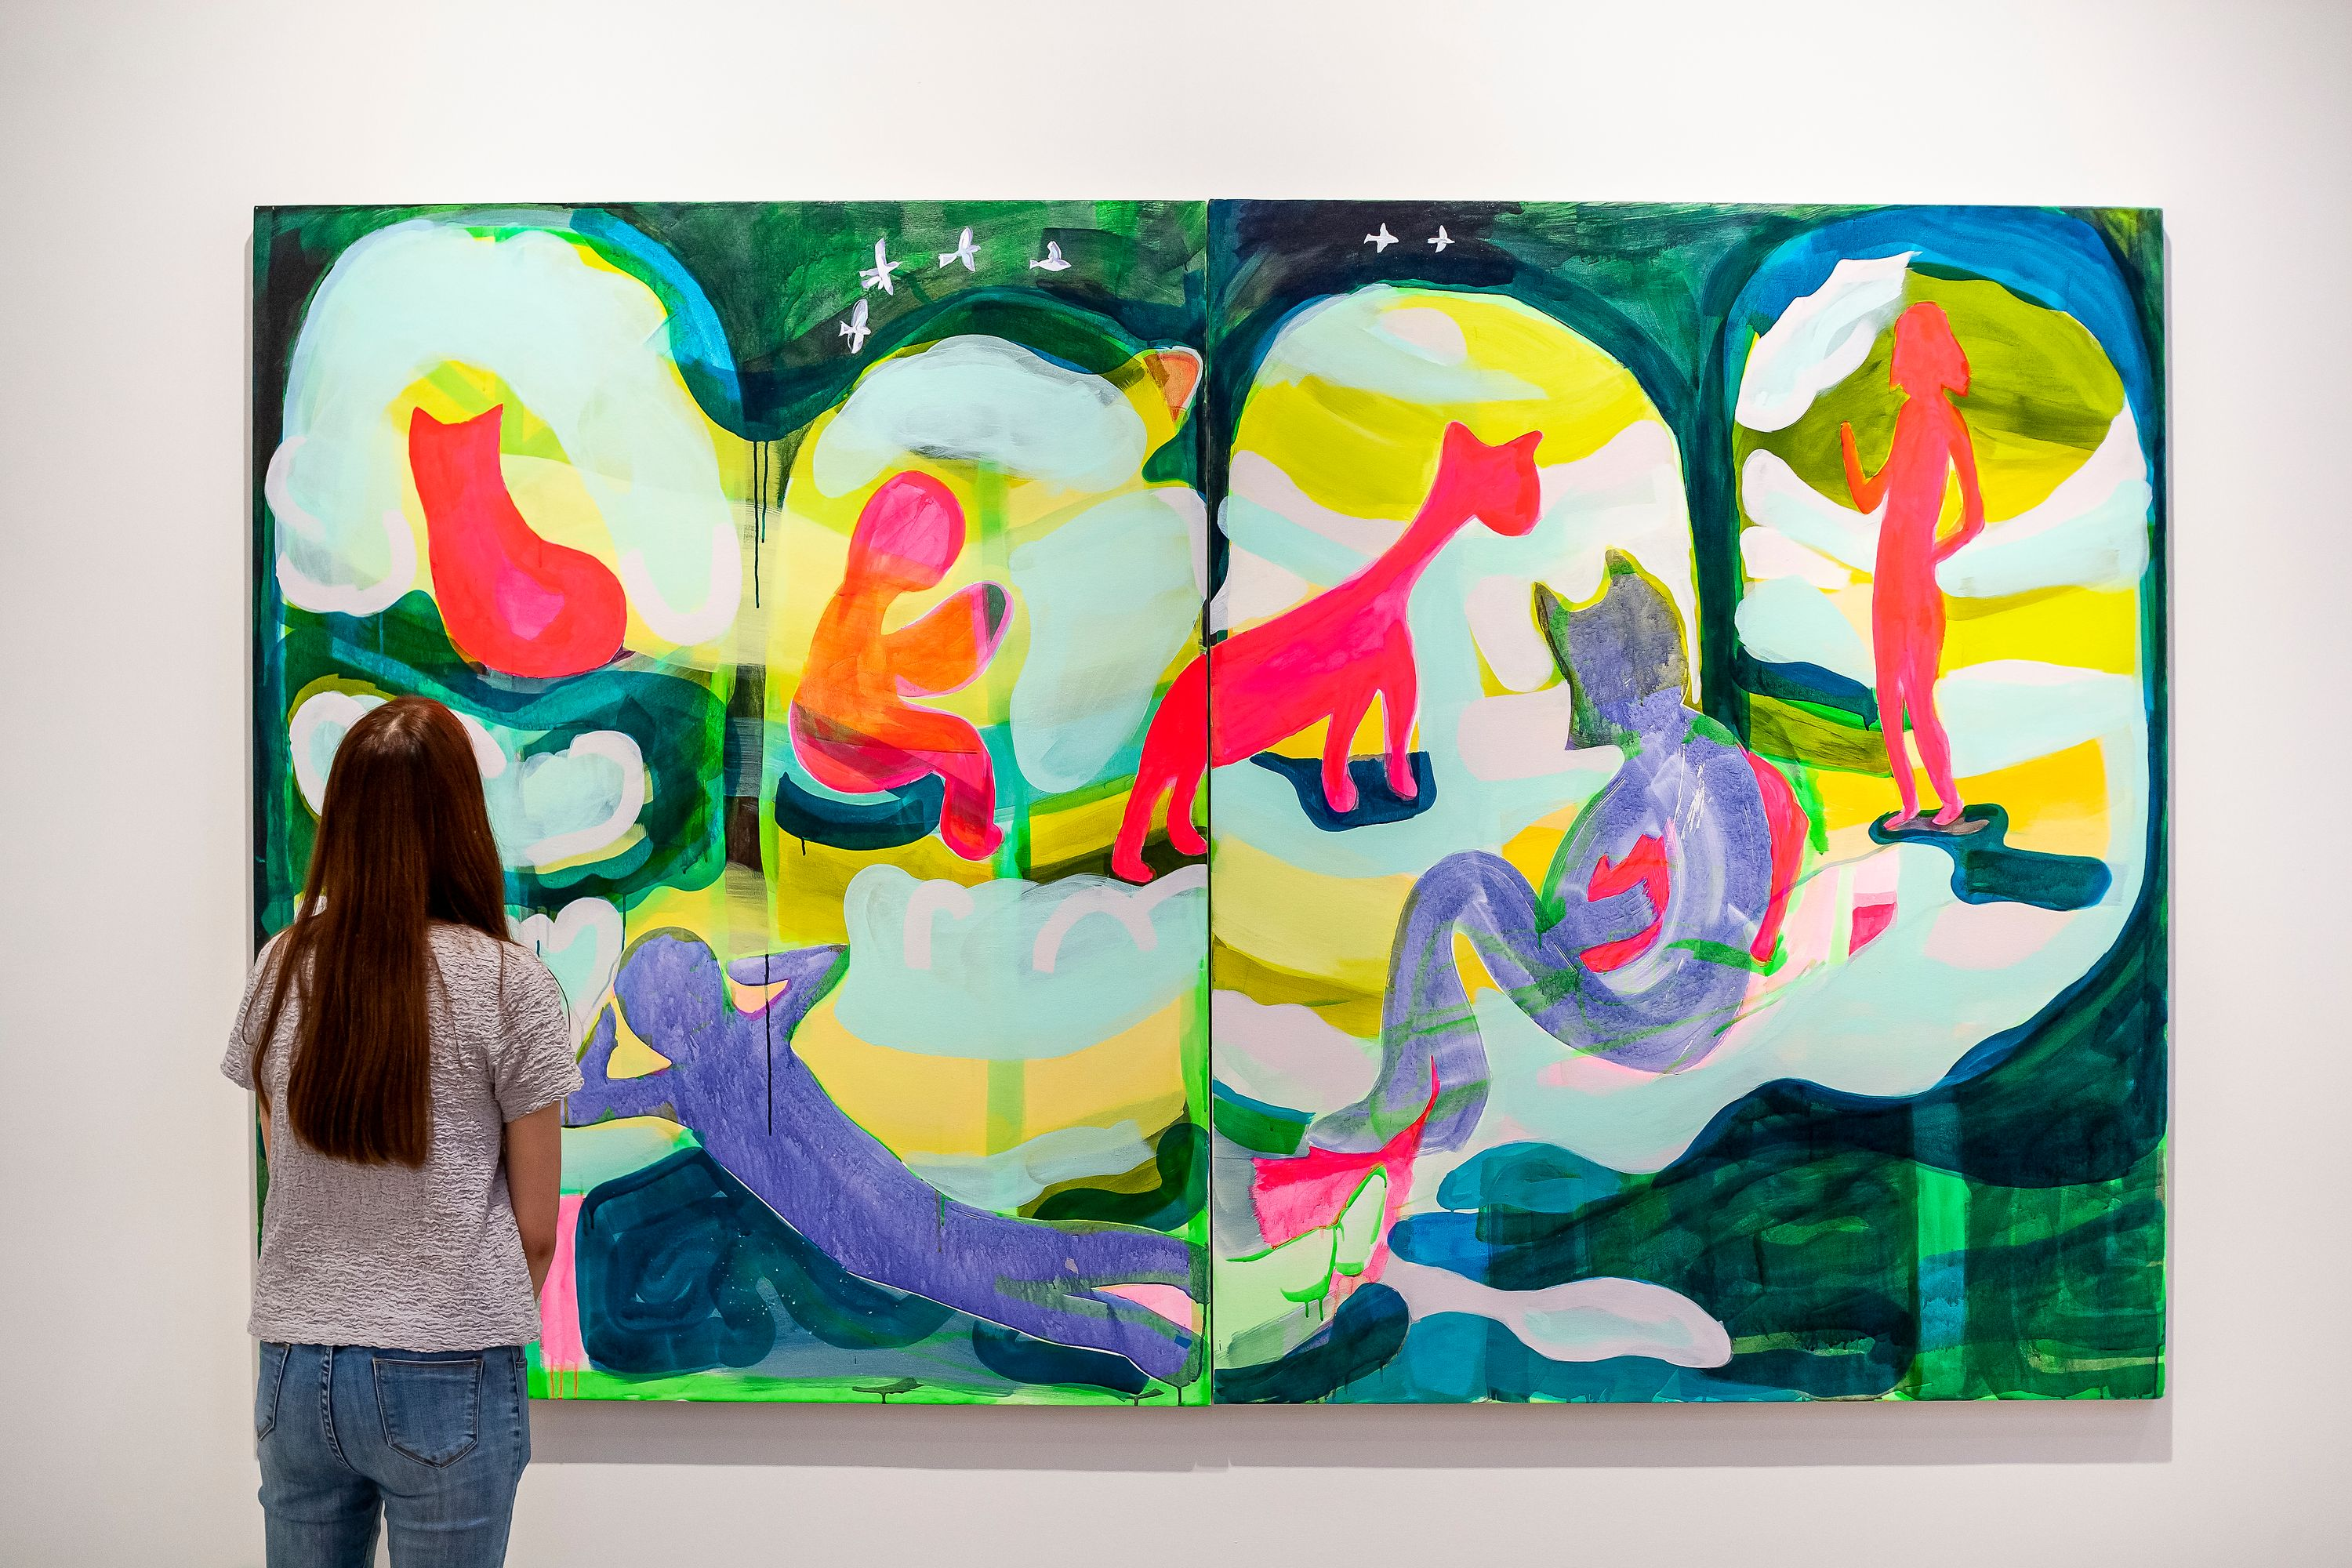 A woman with long brown hair stands facing a large painting by Taeyoon, hung on a white gallery wall. The painting is colorful, with ping cat-like and human-like forms and a flowing background painted in dark greens, light teals, and purple.